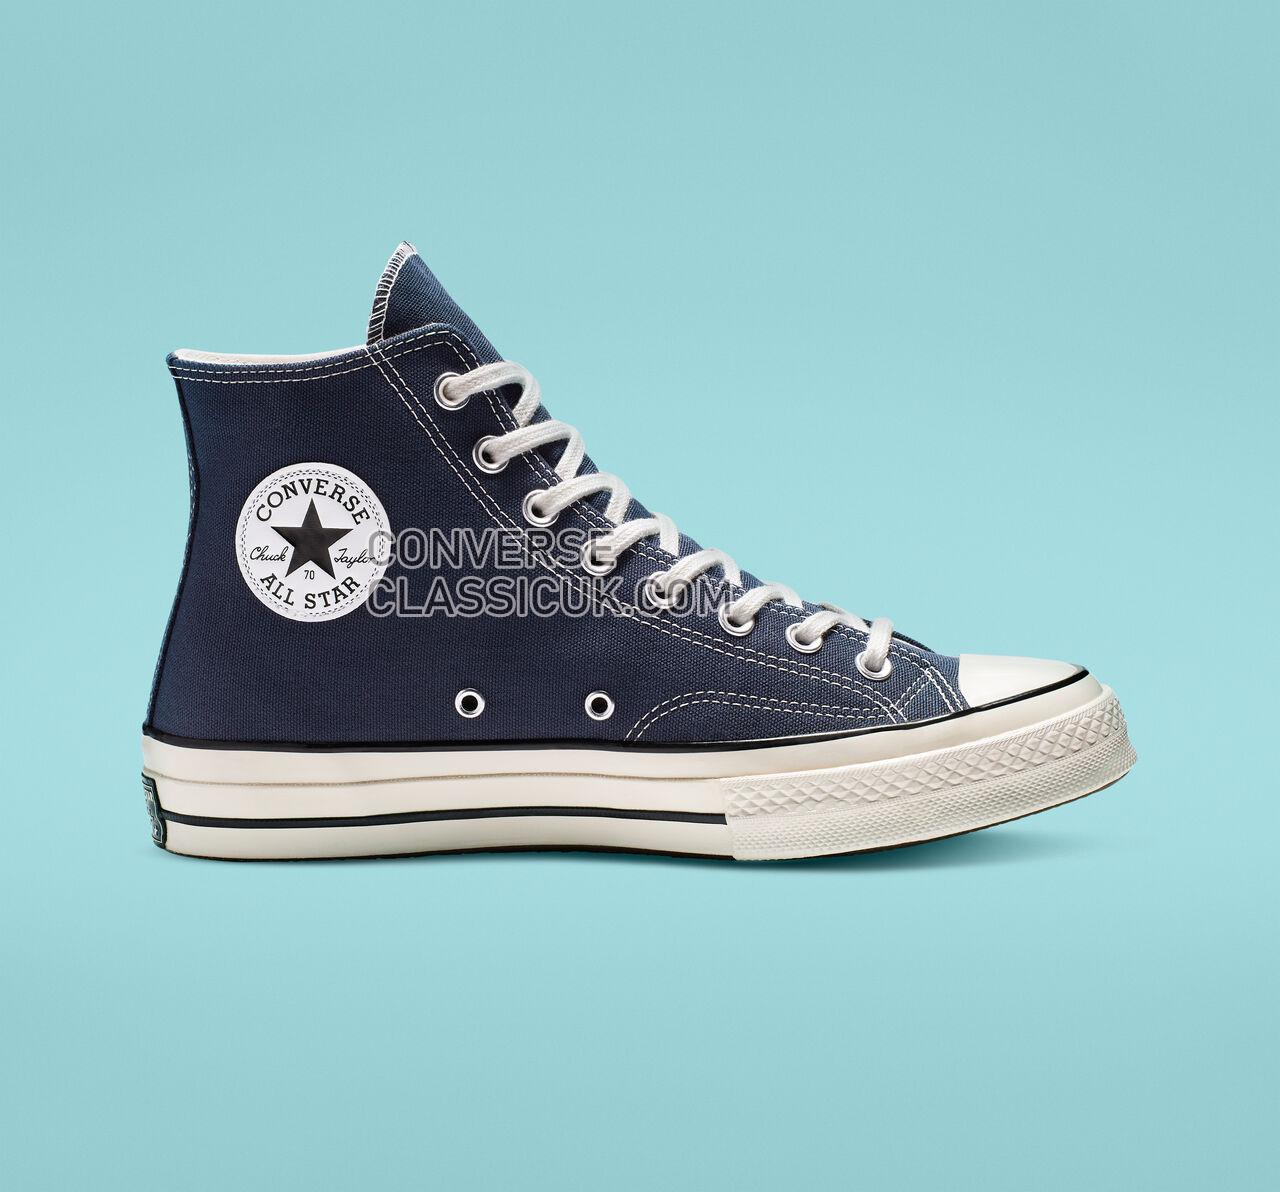 Converse Chuck 70 High Top Mens Womens Unisex 164945C Obsidian/Egret/Black Shoes